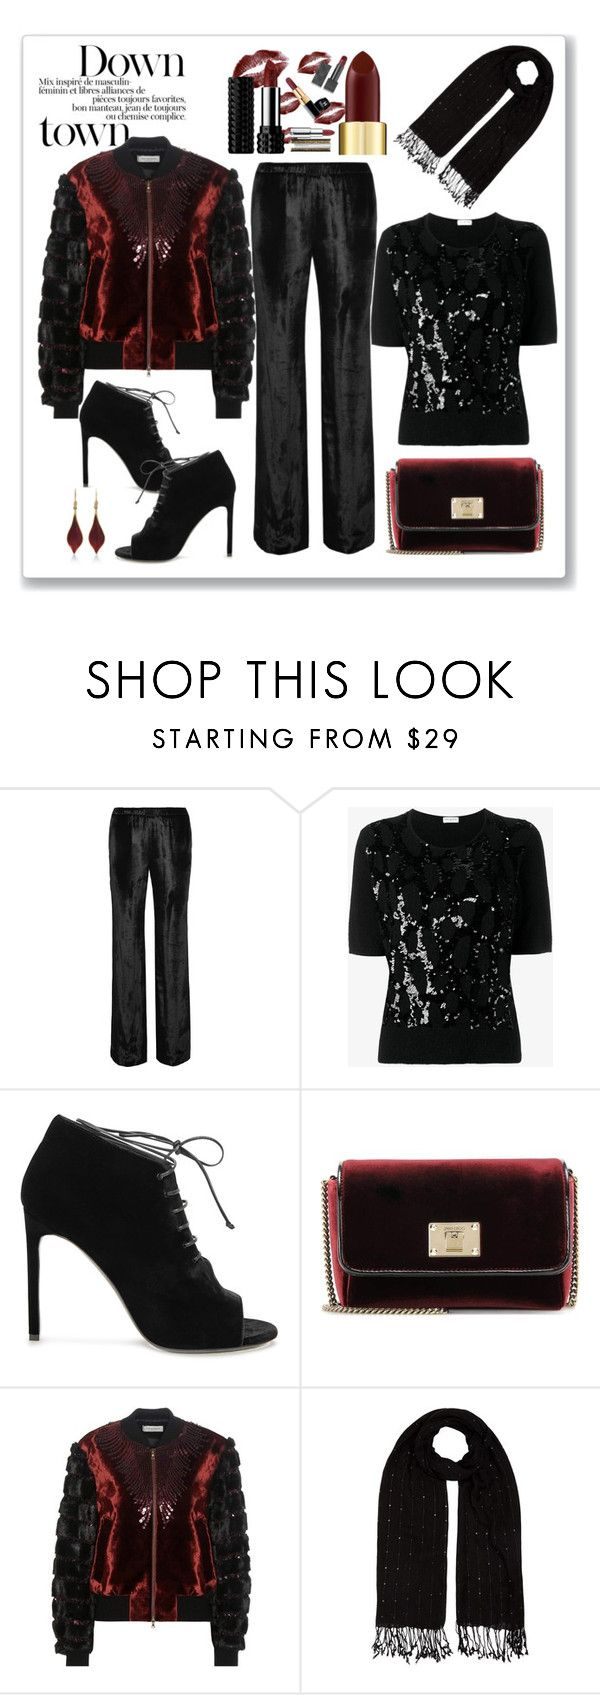 """Dries Van Noten Sequin Velvet Bomber Jacket Look"" by romaboots-1 ❤ liked on Polyvore featuring Tamara Mellon, Dries Van Noten, Yves Saint Laurent, Jimmy Choo, Jacques Vert and Annette Ferdinandsen"